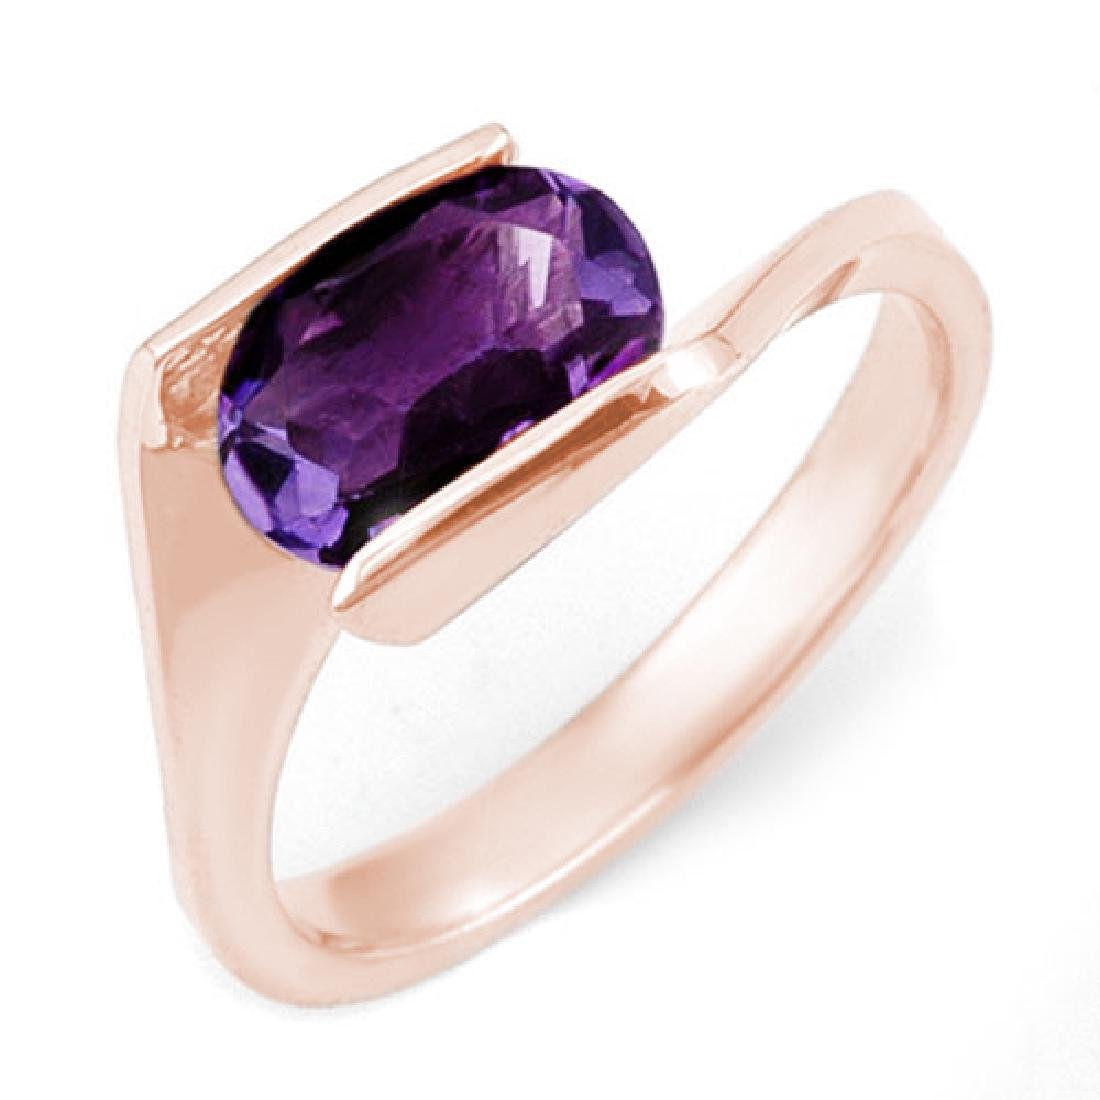 2.0 CTW Amethyst Ring 10K Rose Gold